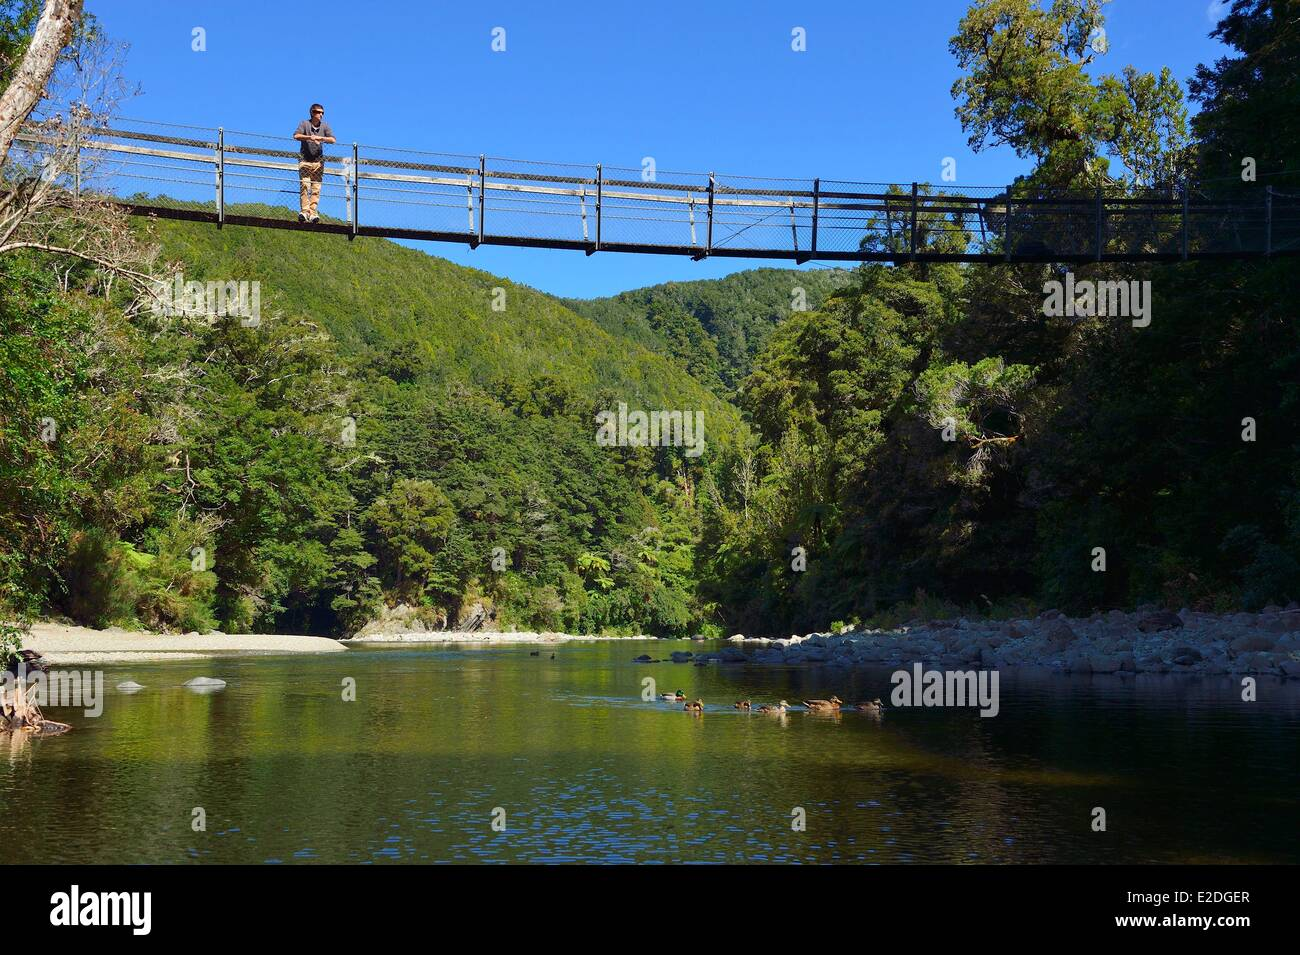 New Zealand North island Wellington Kaitoke regional Park where some scenes of the Lord of the Rings were filmed - Stock Image